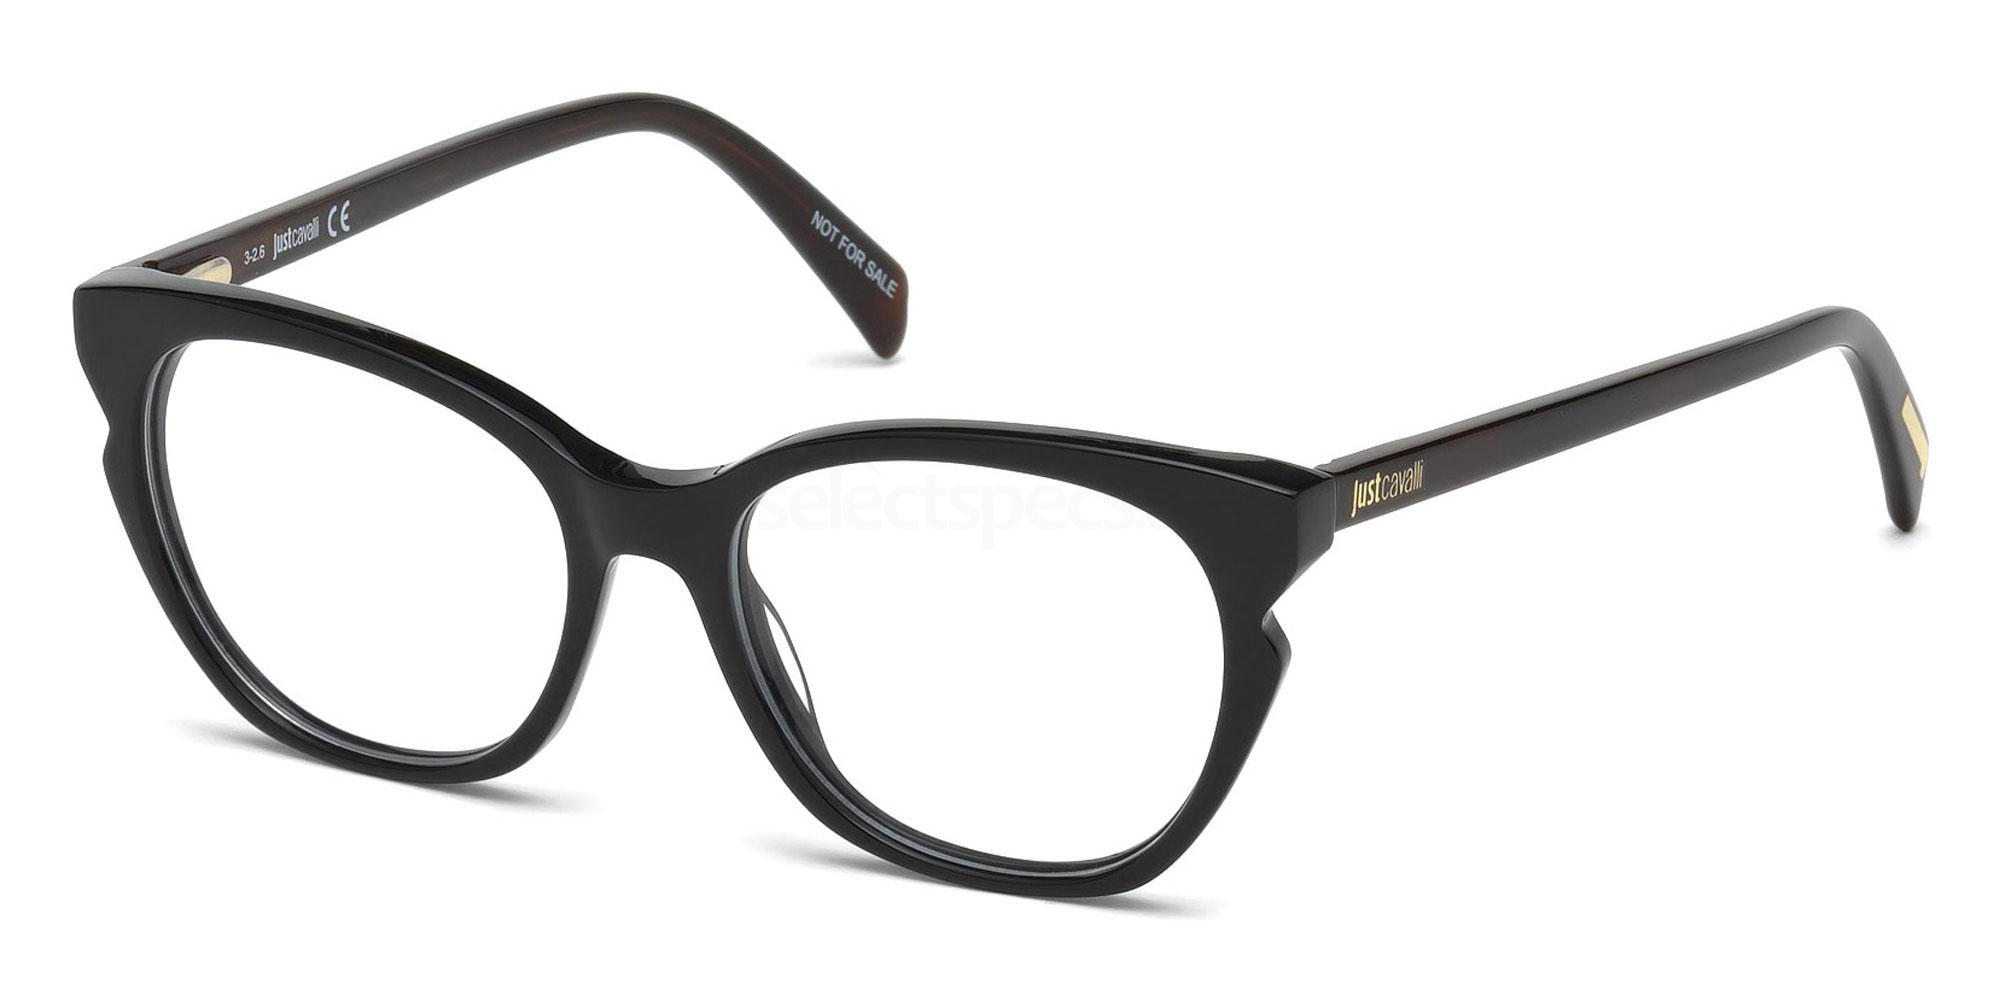 001 JC0798 Glasses, Just Cavalli